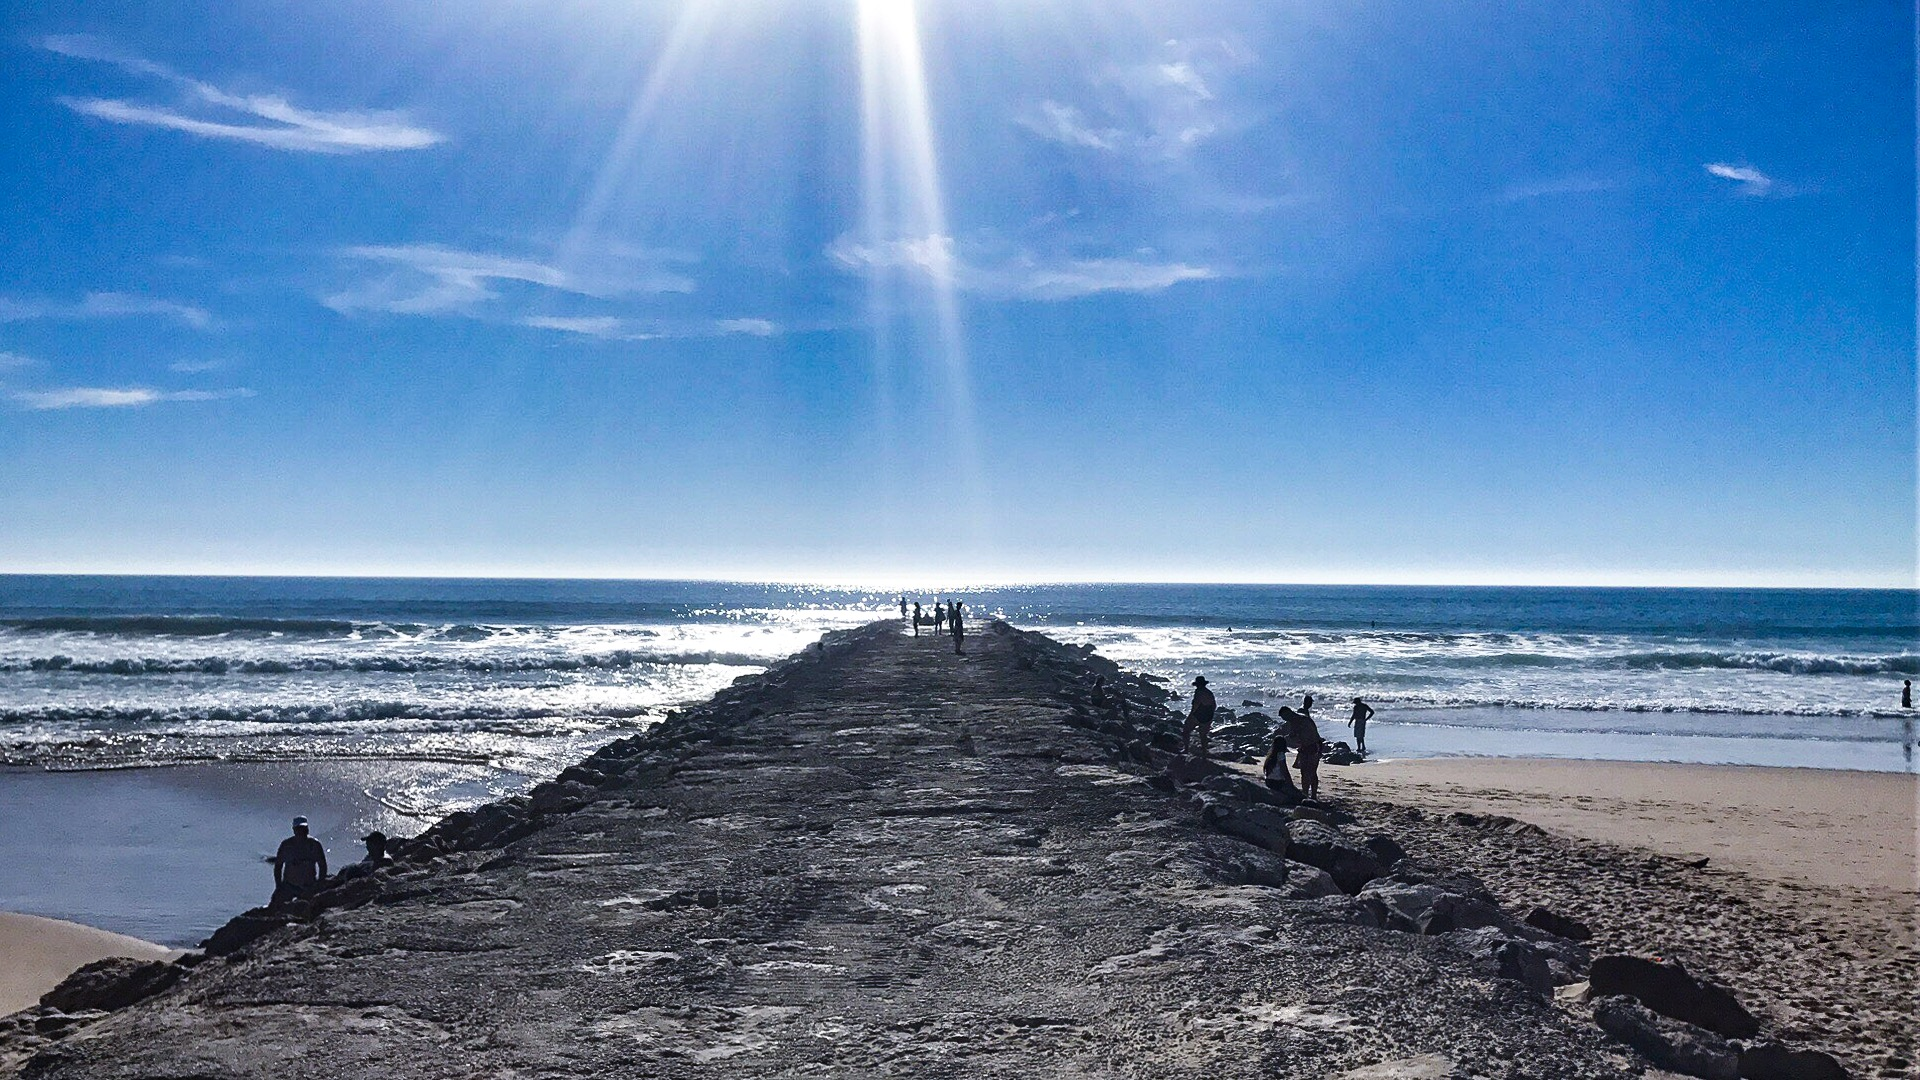 The famous path into the ocean in Caparica